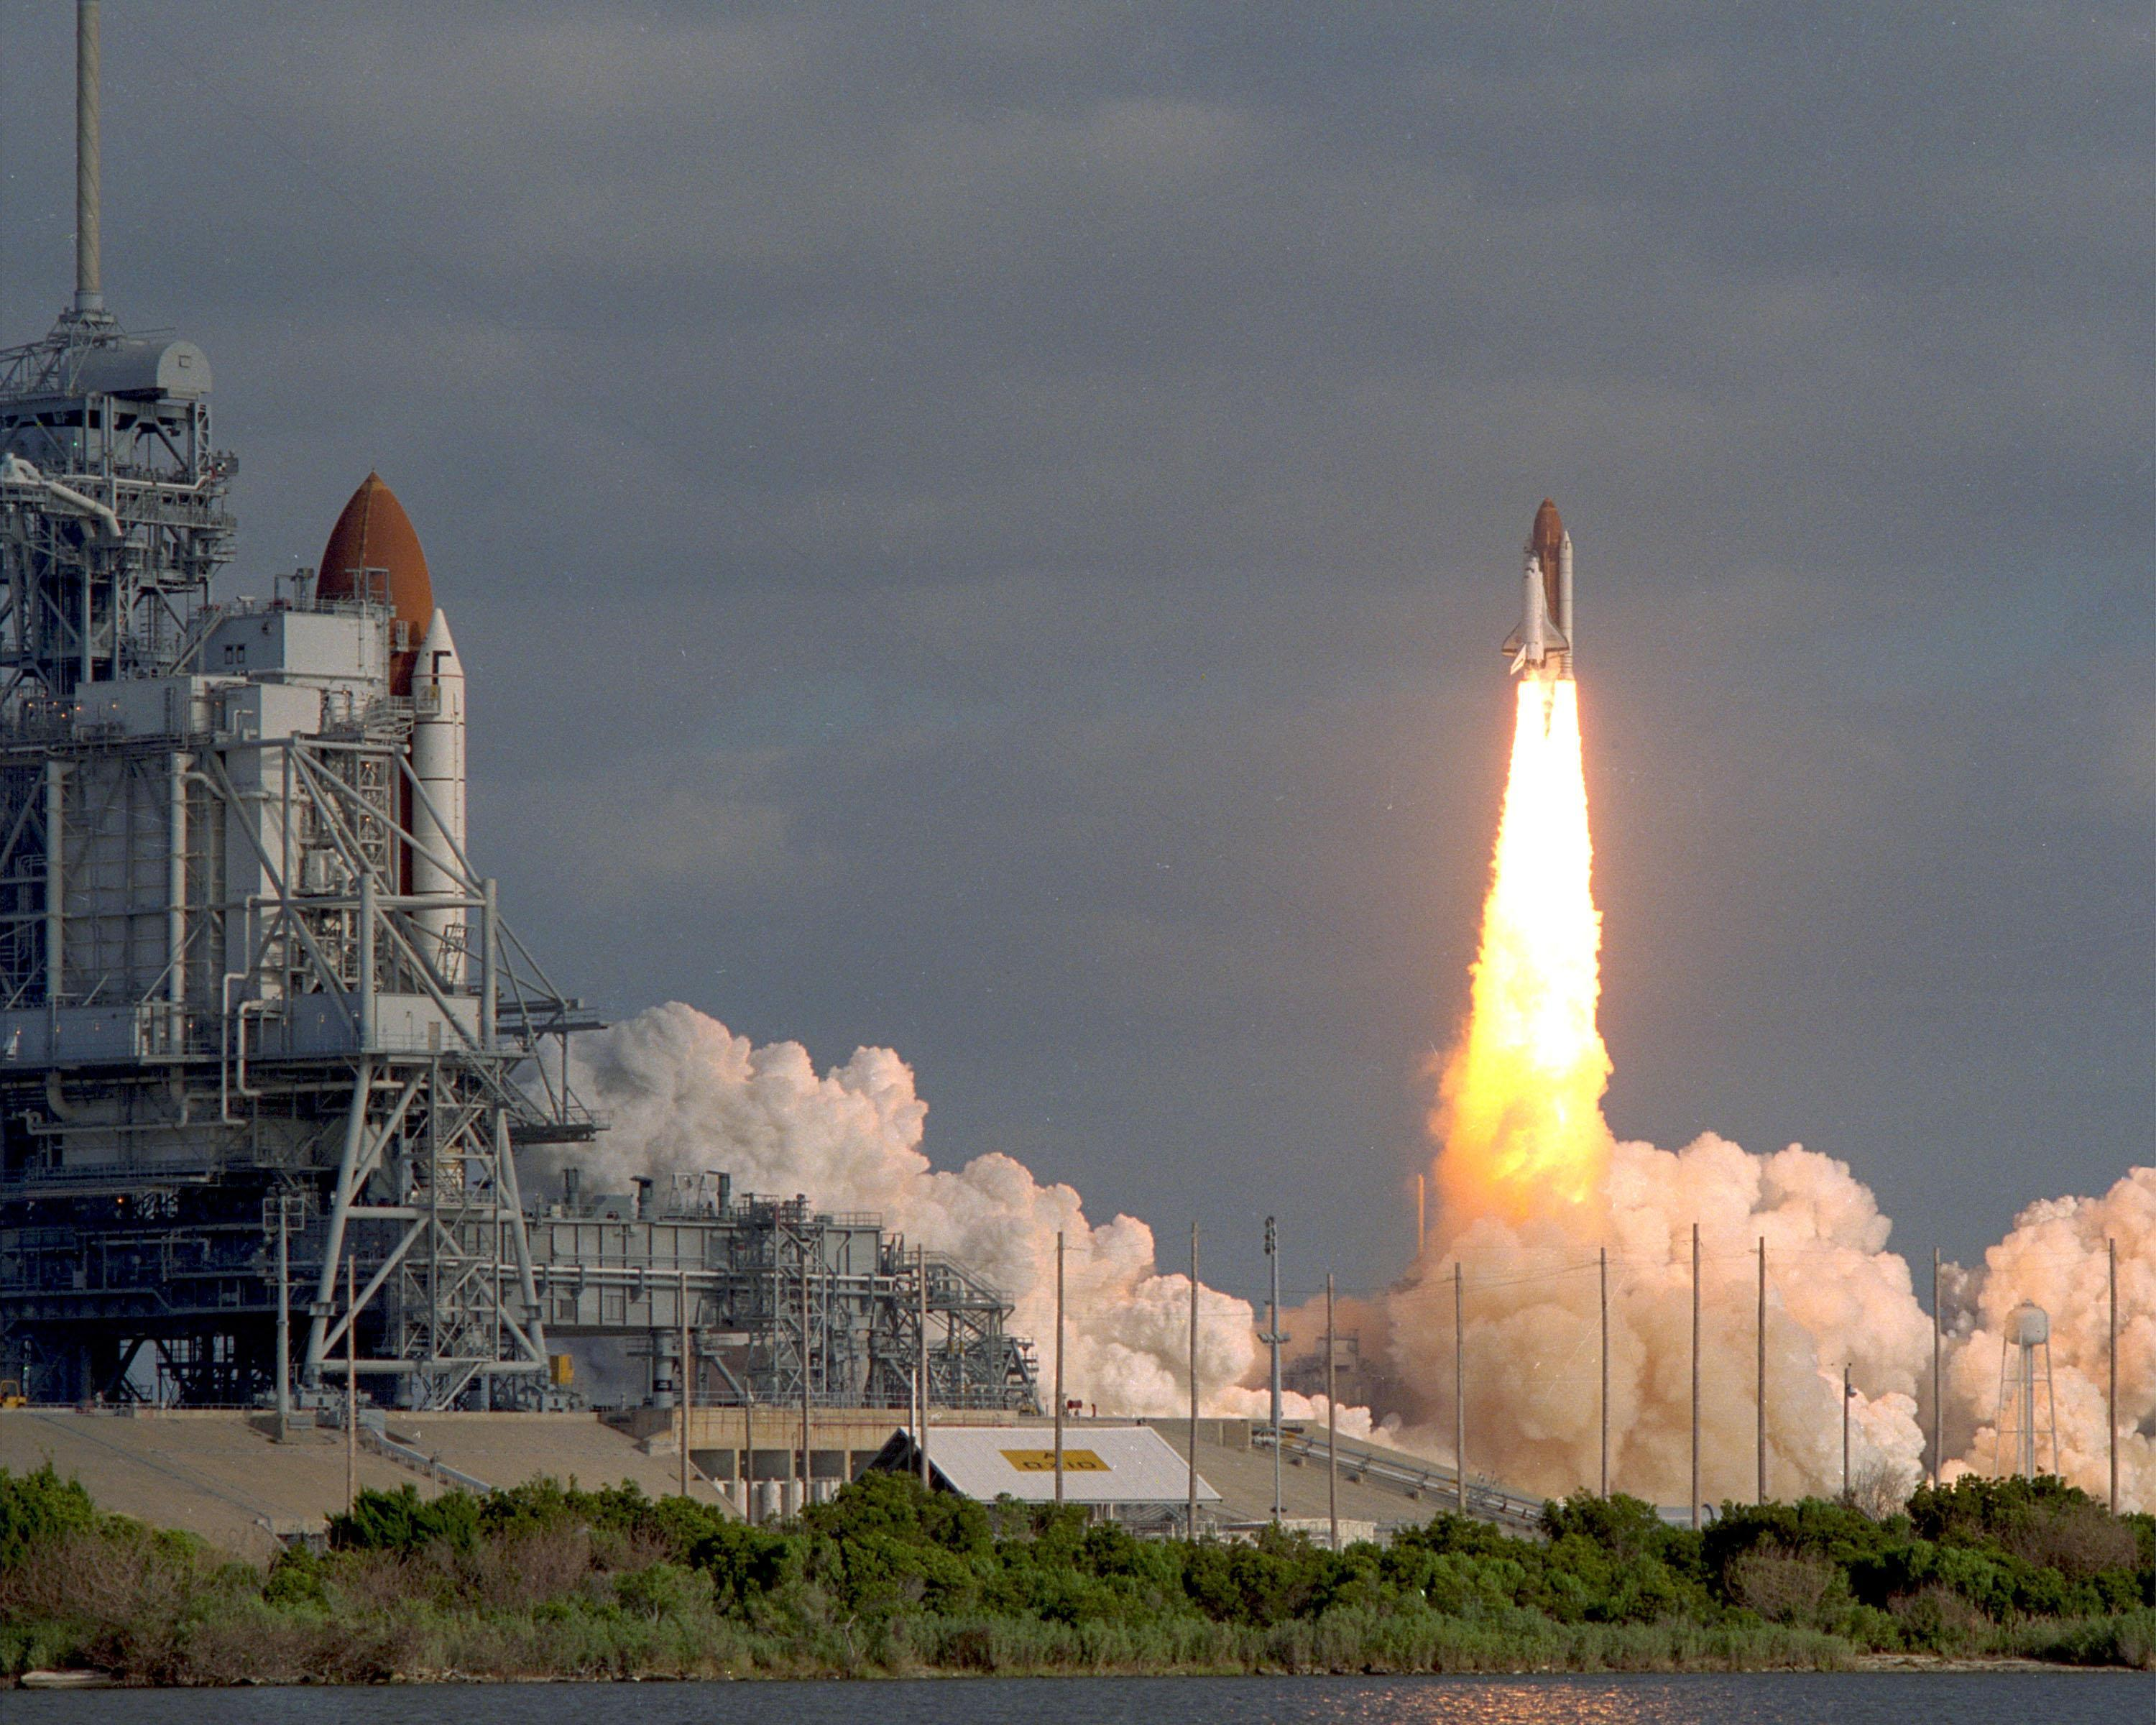 space shuttle hubble - photo #25